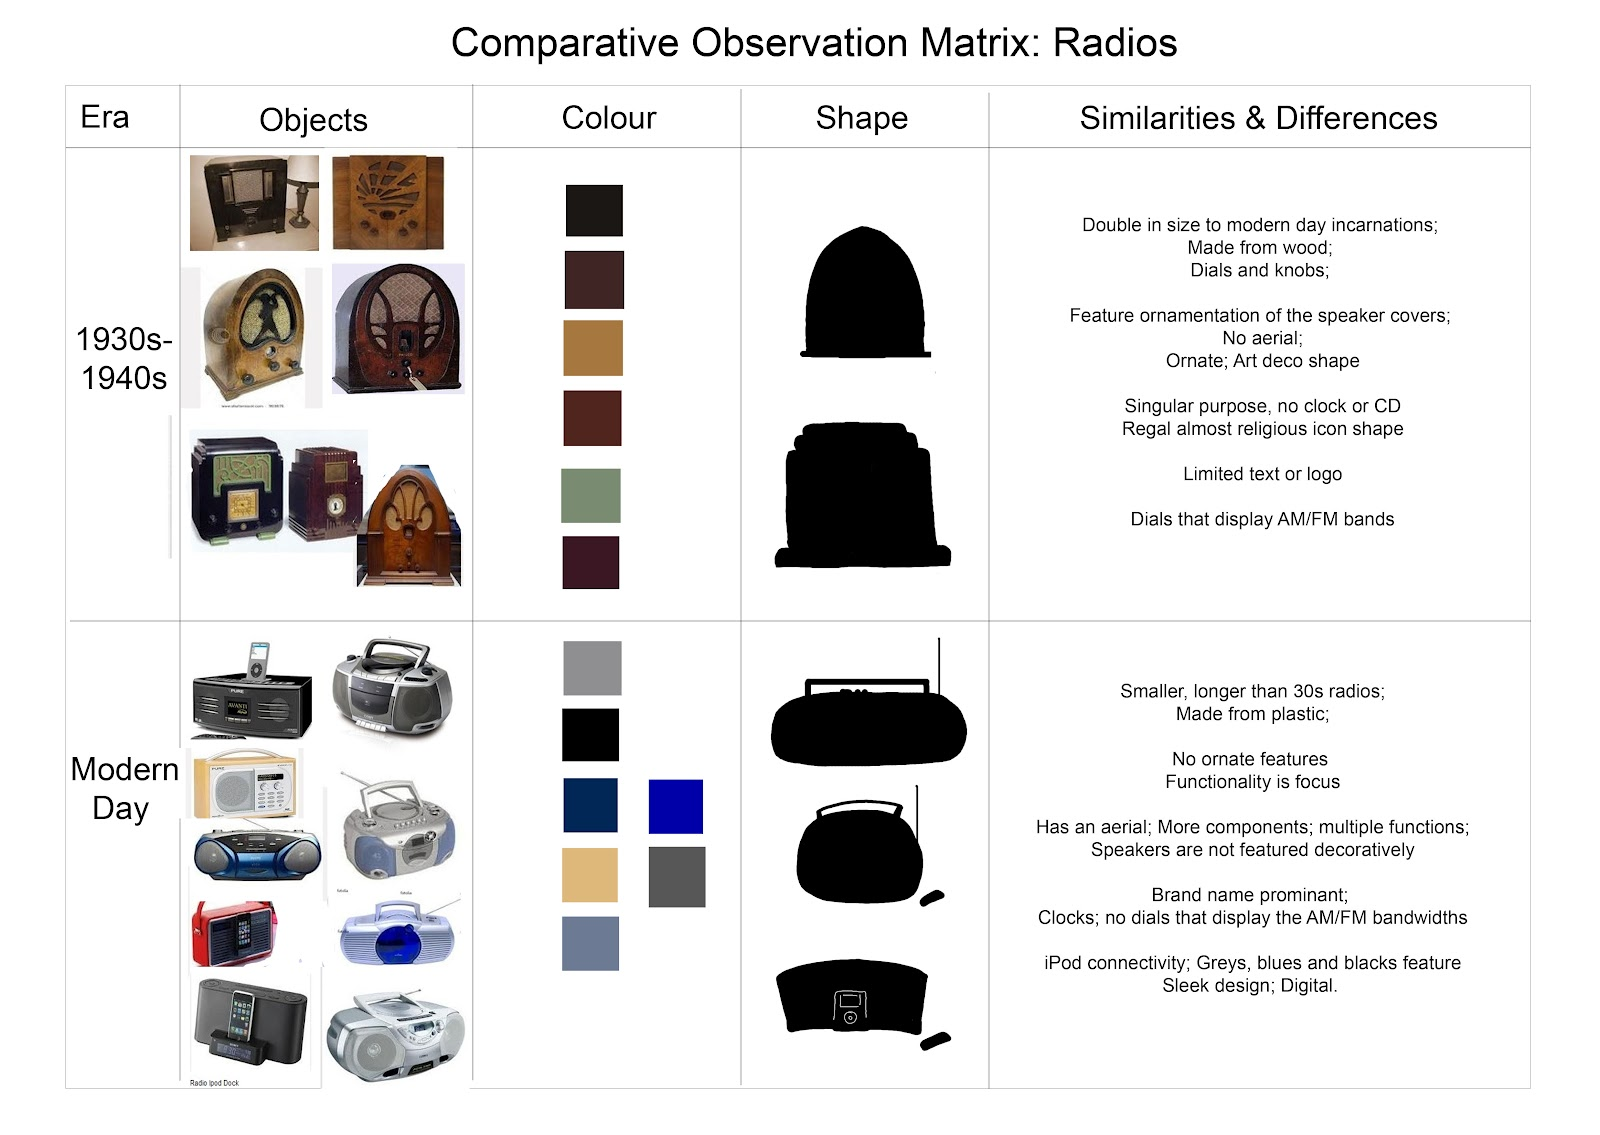 Animation Honours Comparative Observational Matrix Part 2